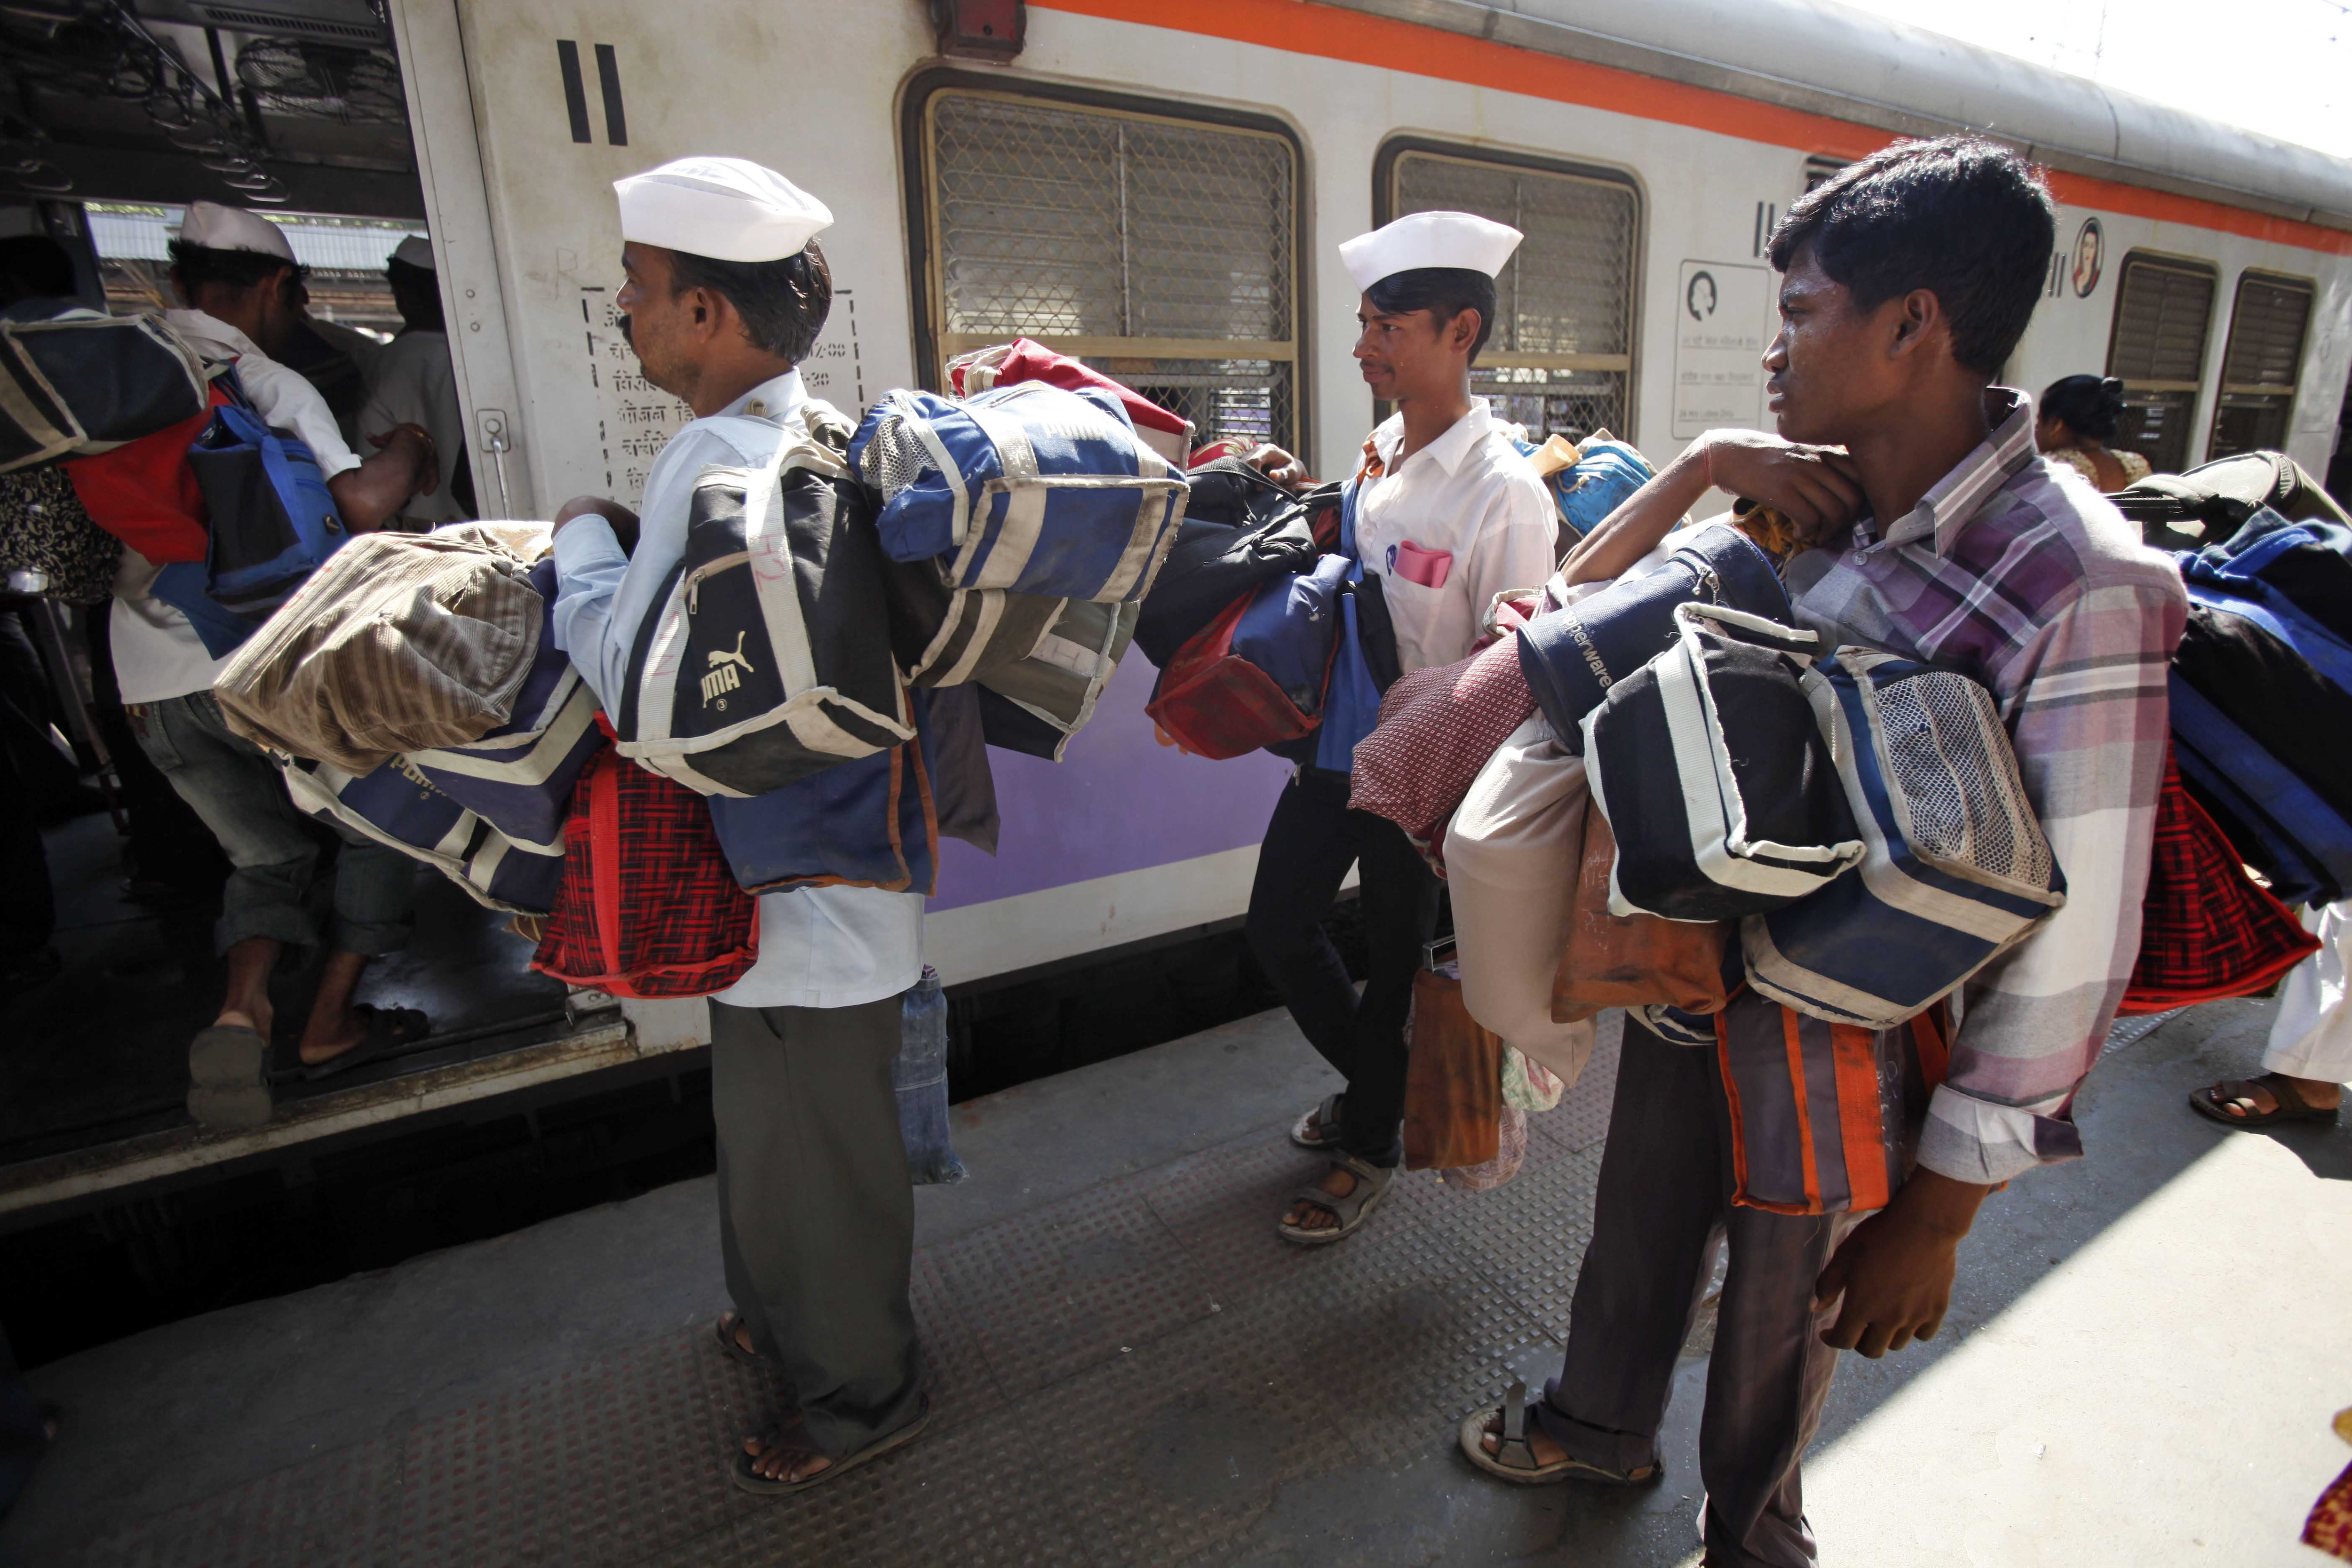 Dabbawalas boarding a train, part of their good business practices